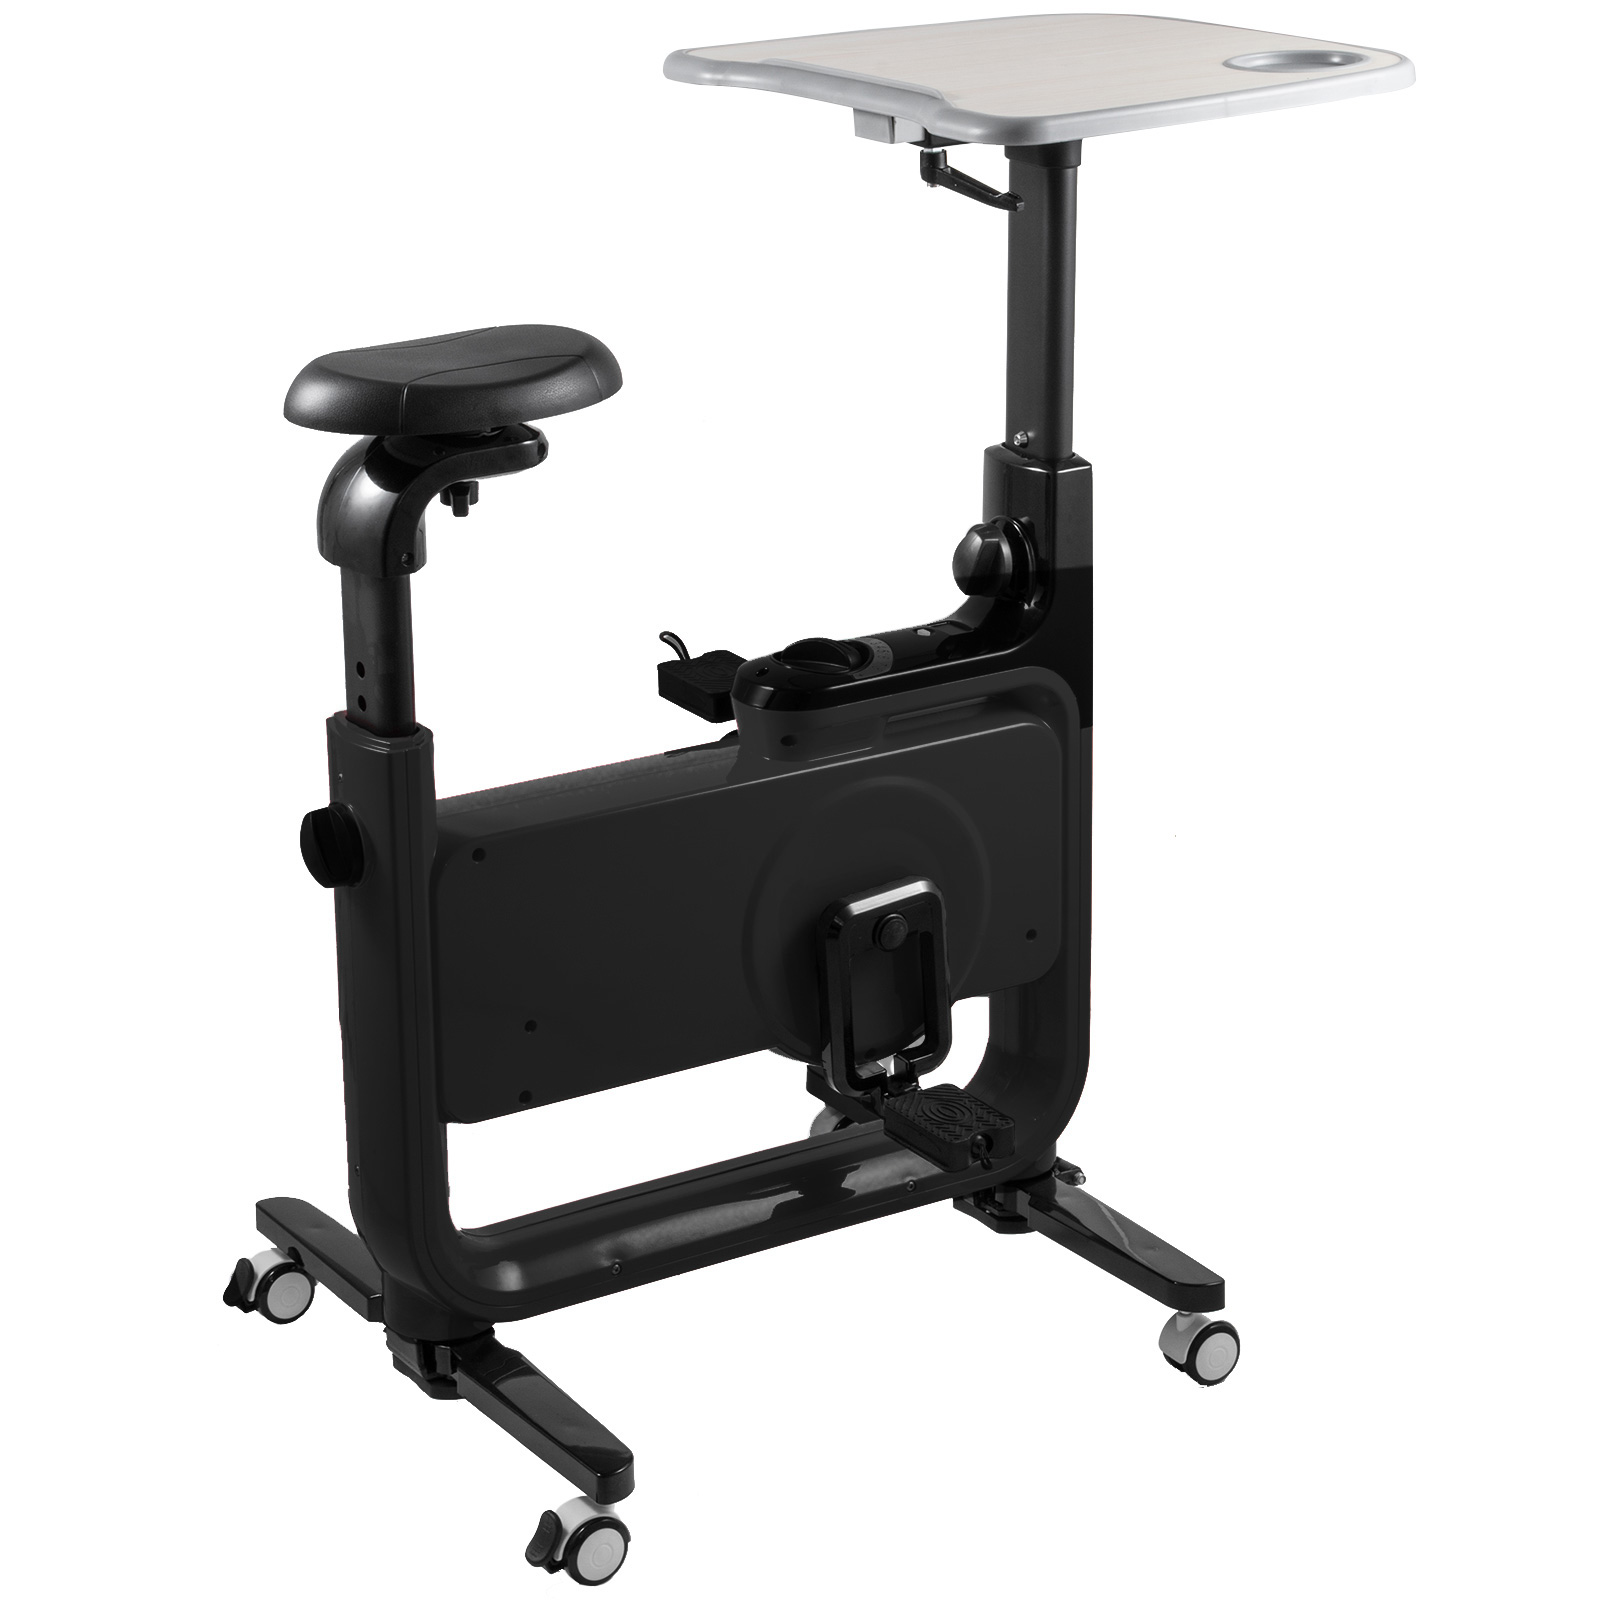 Multi-style-Magnetic-Exercise-Bike-office-Bicycle-under-Desk-Fitness-Cardio miniature 21